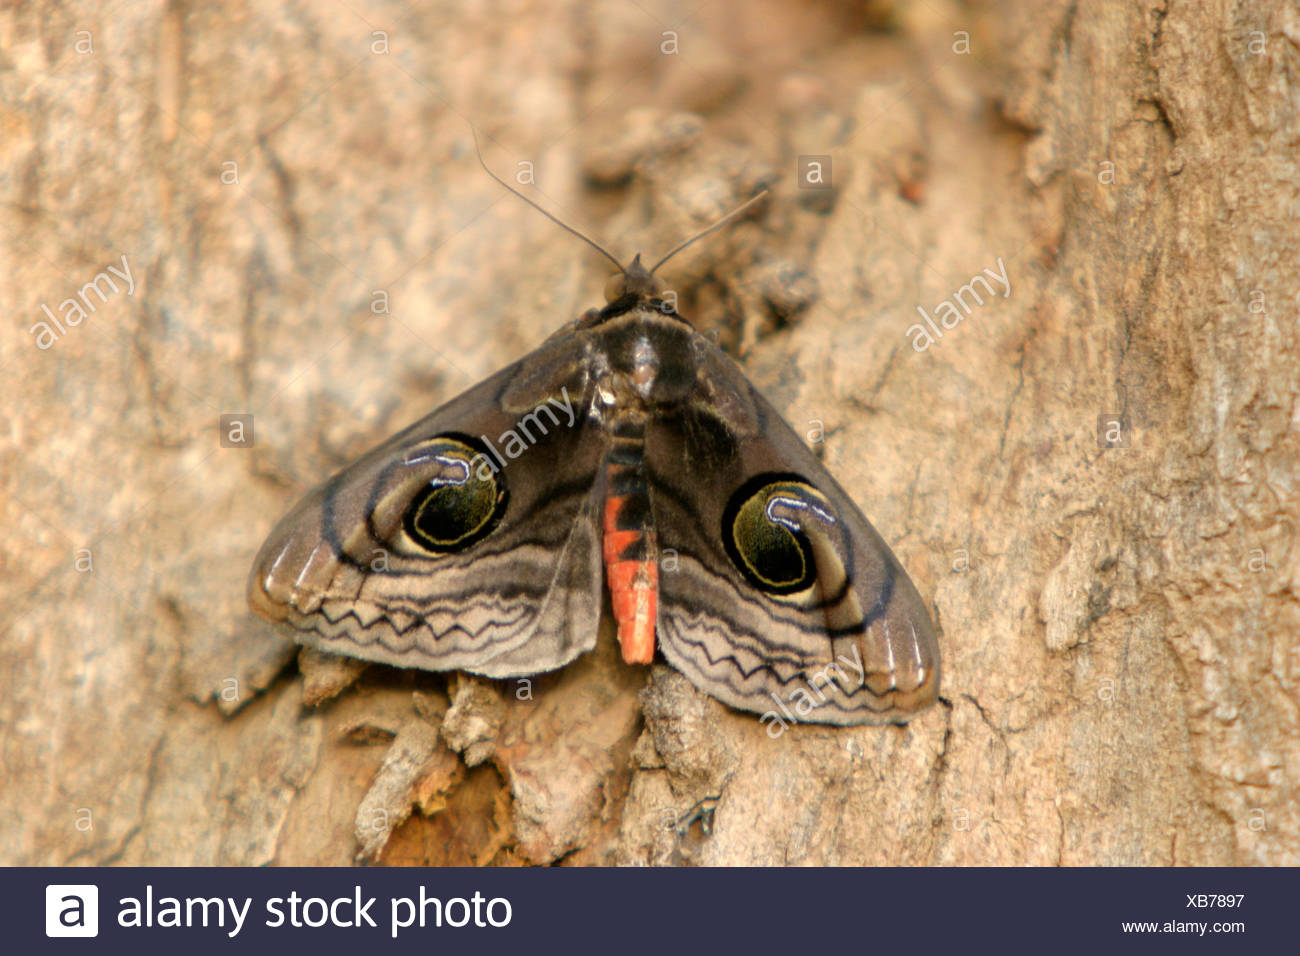 Owl moth, Brahmaea wallichii found in Madhya Pradesh, India - Stock Image